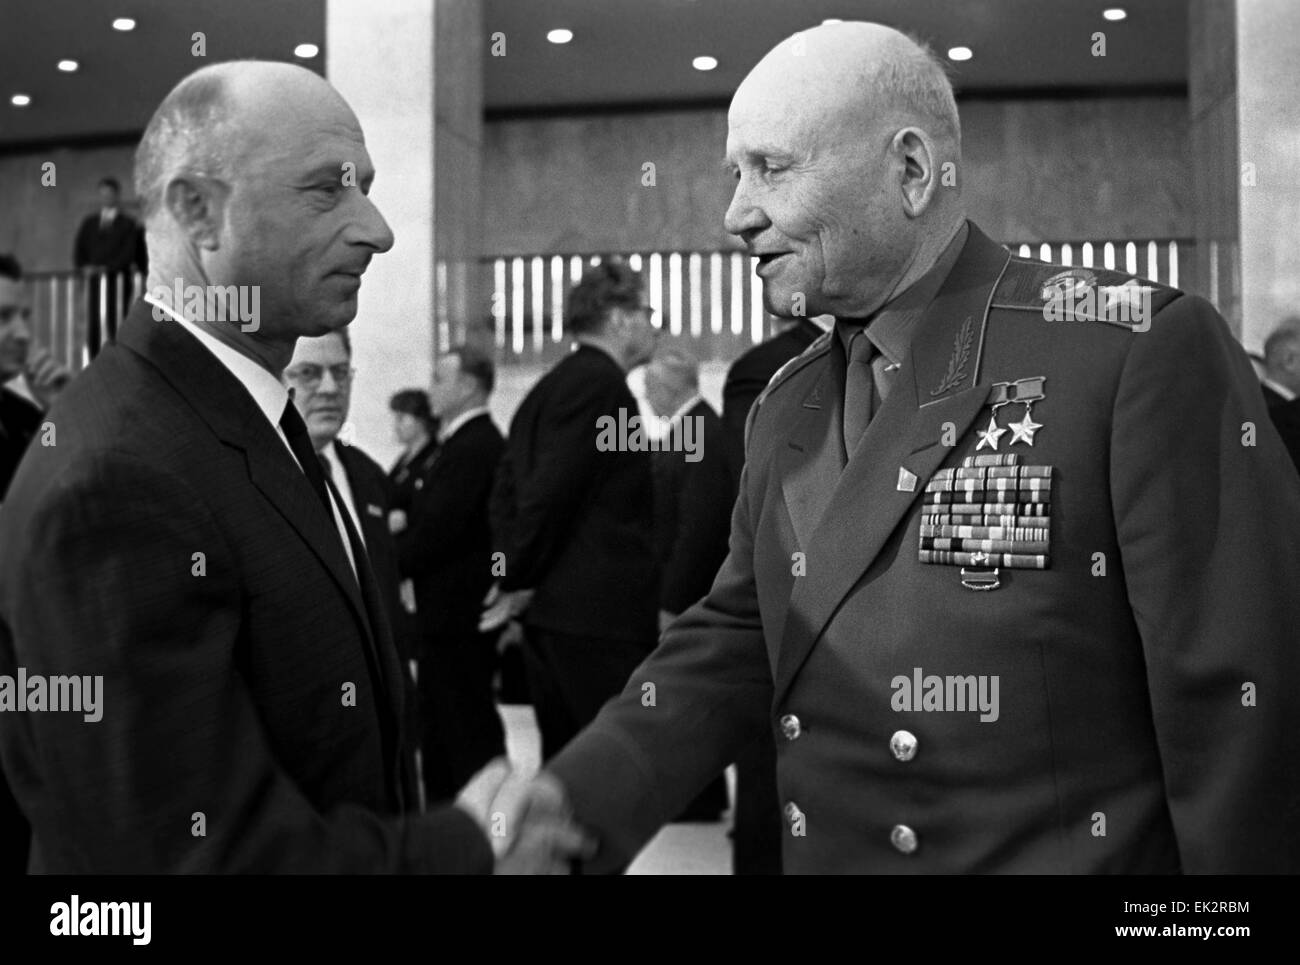 Moscow. XXIII Congress of the CPSU. Delegates of the Congress: junior sergeant Meliton Kantaria L and Marshal of - Stock Image